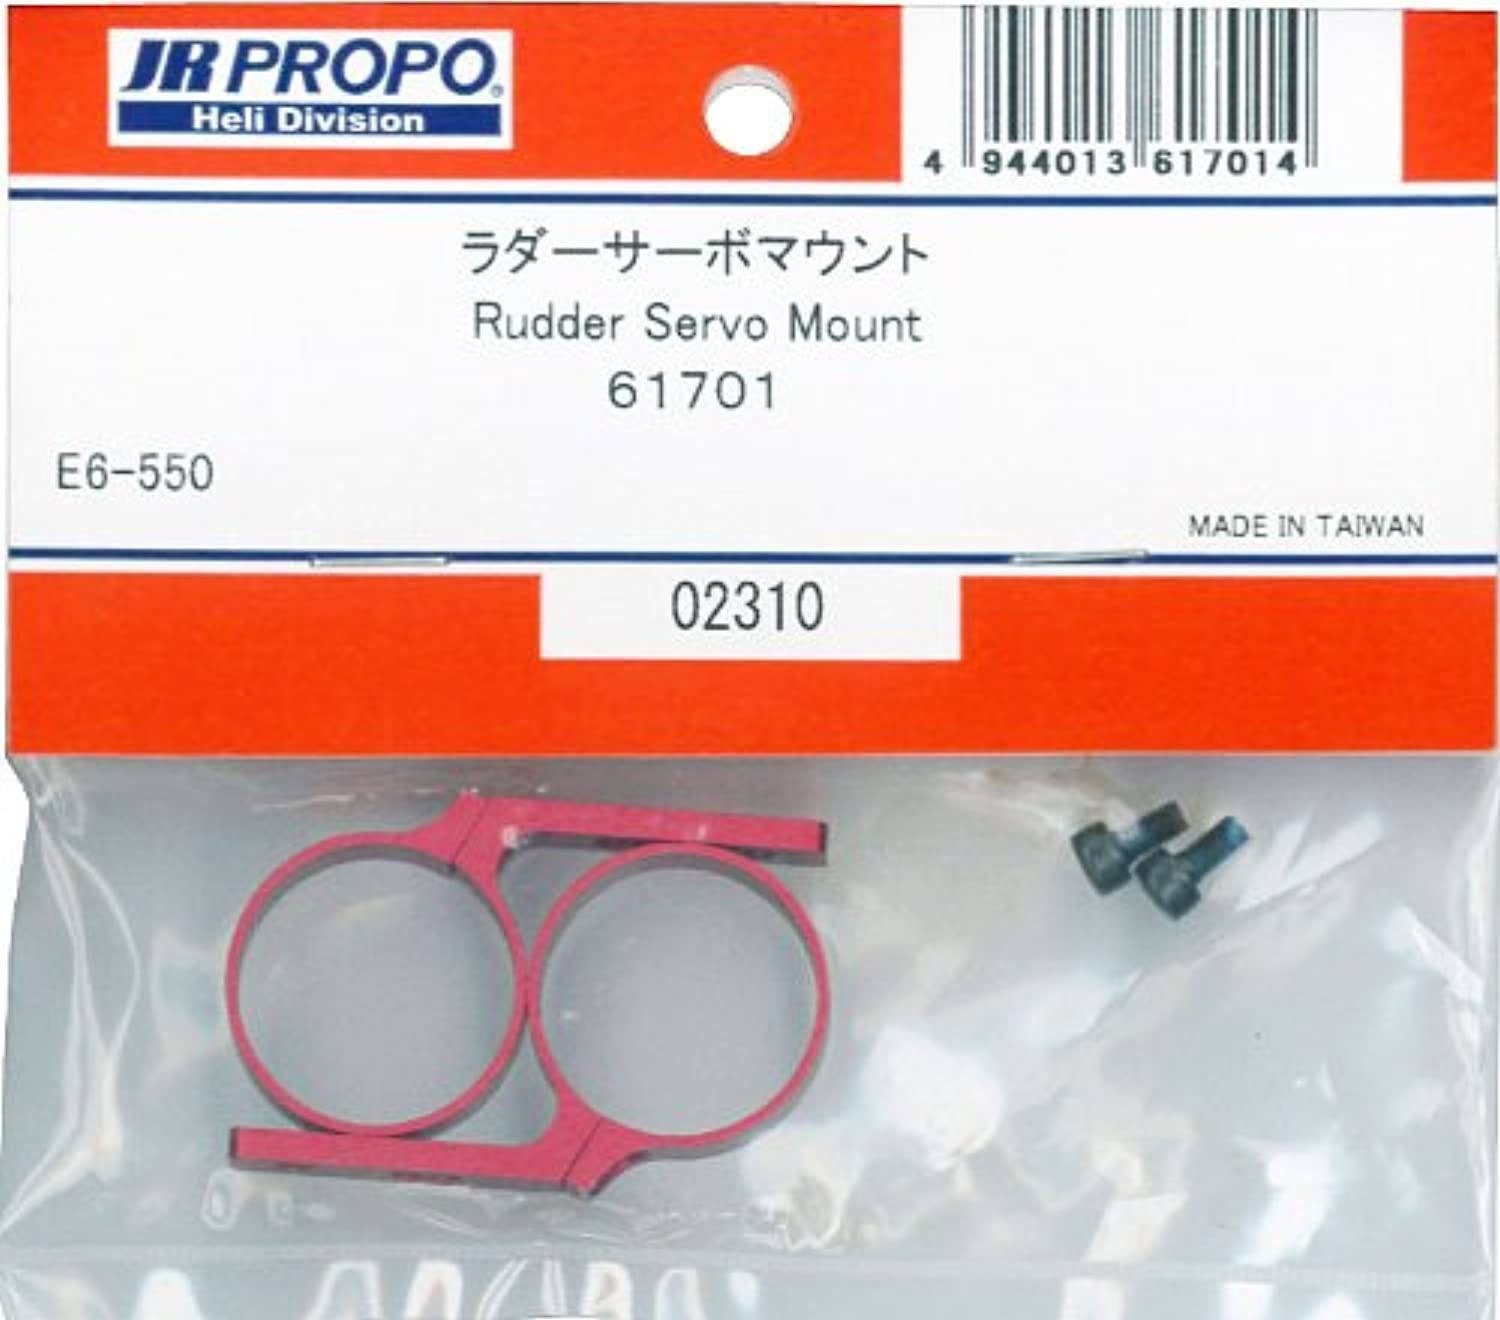 Rudder Servo Mount 61701 (Japan import   The package and the manual are written in Japanese)